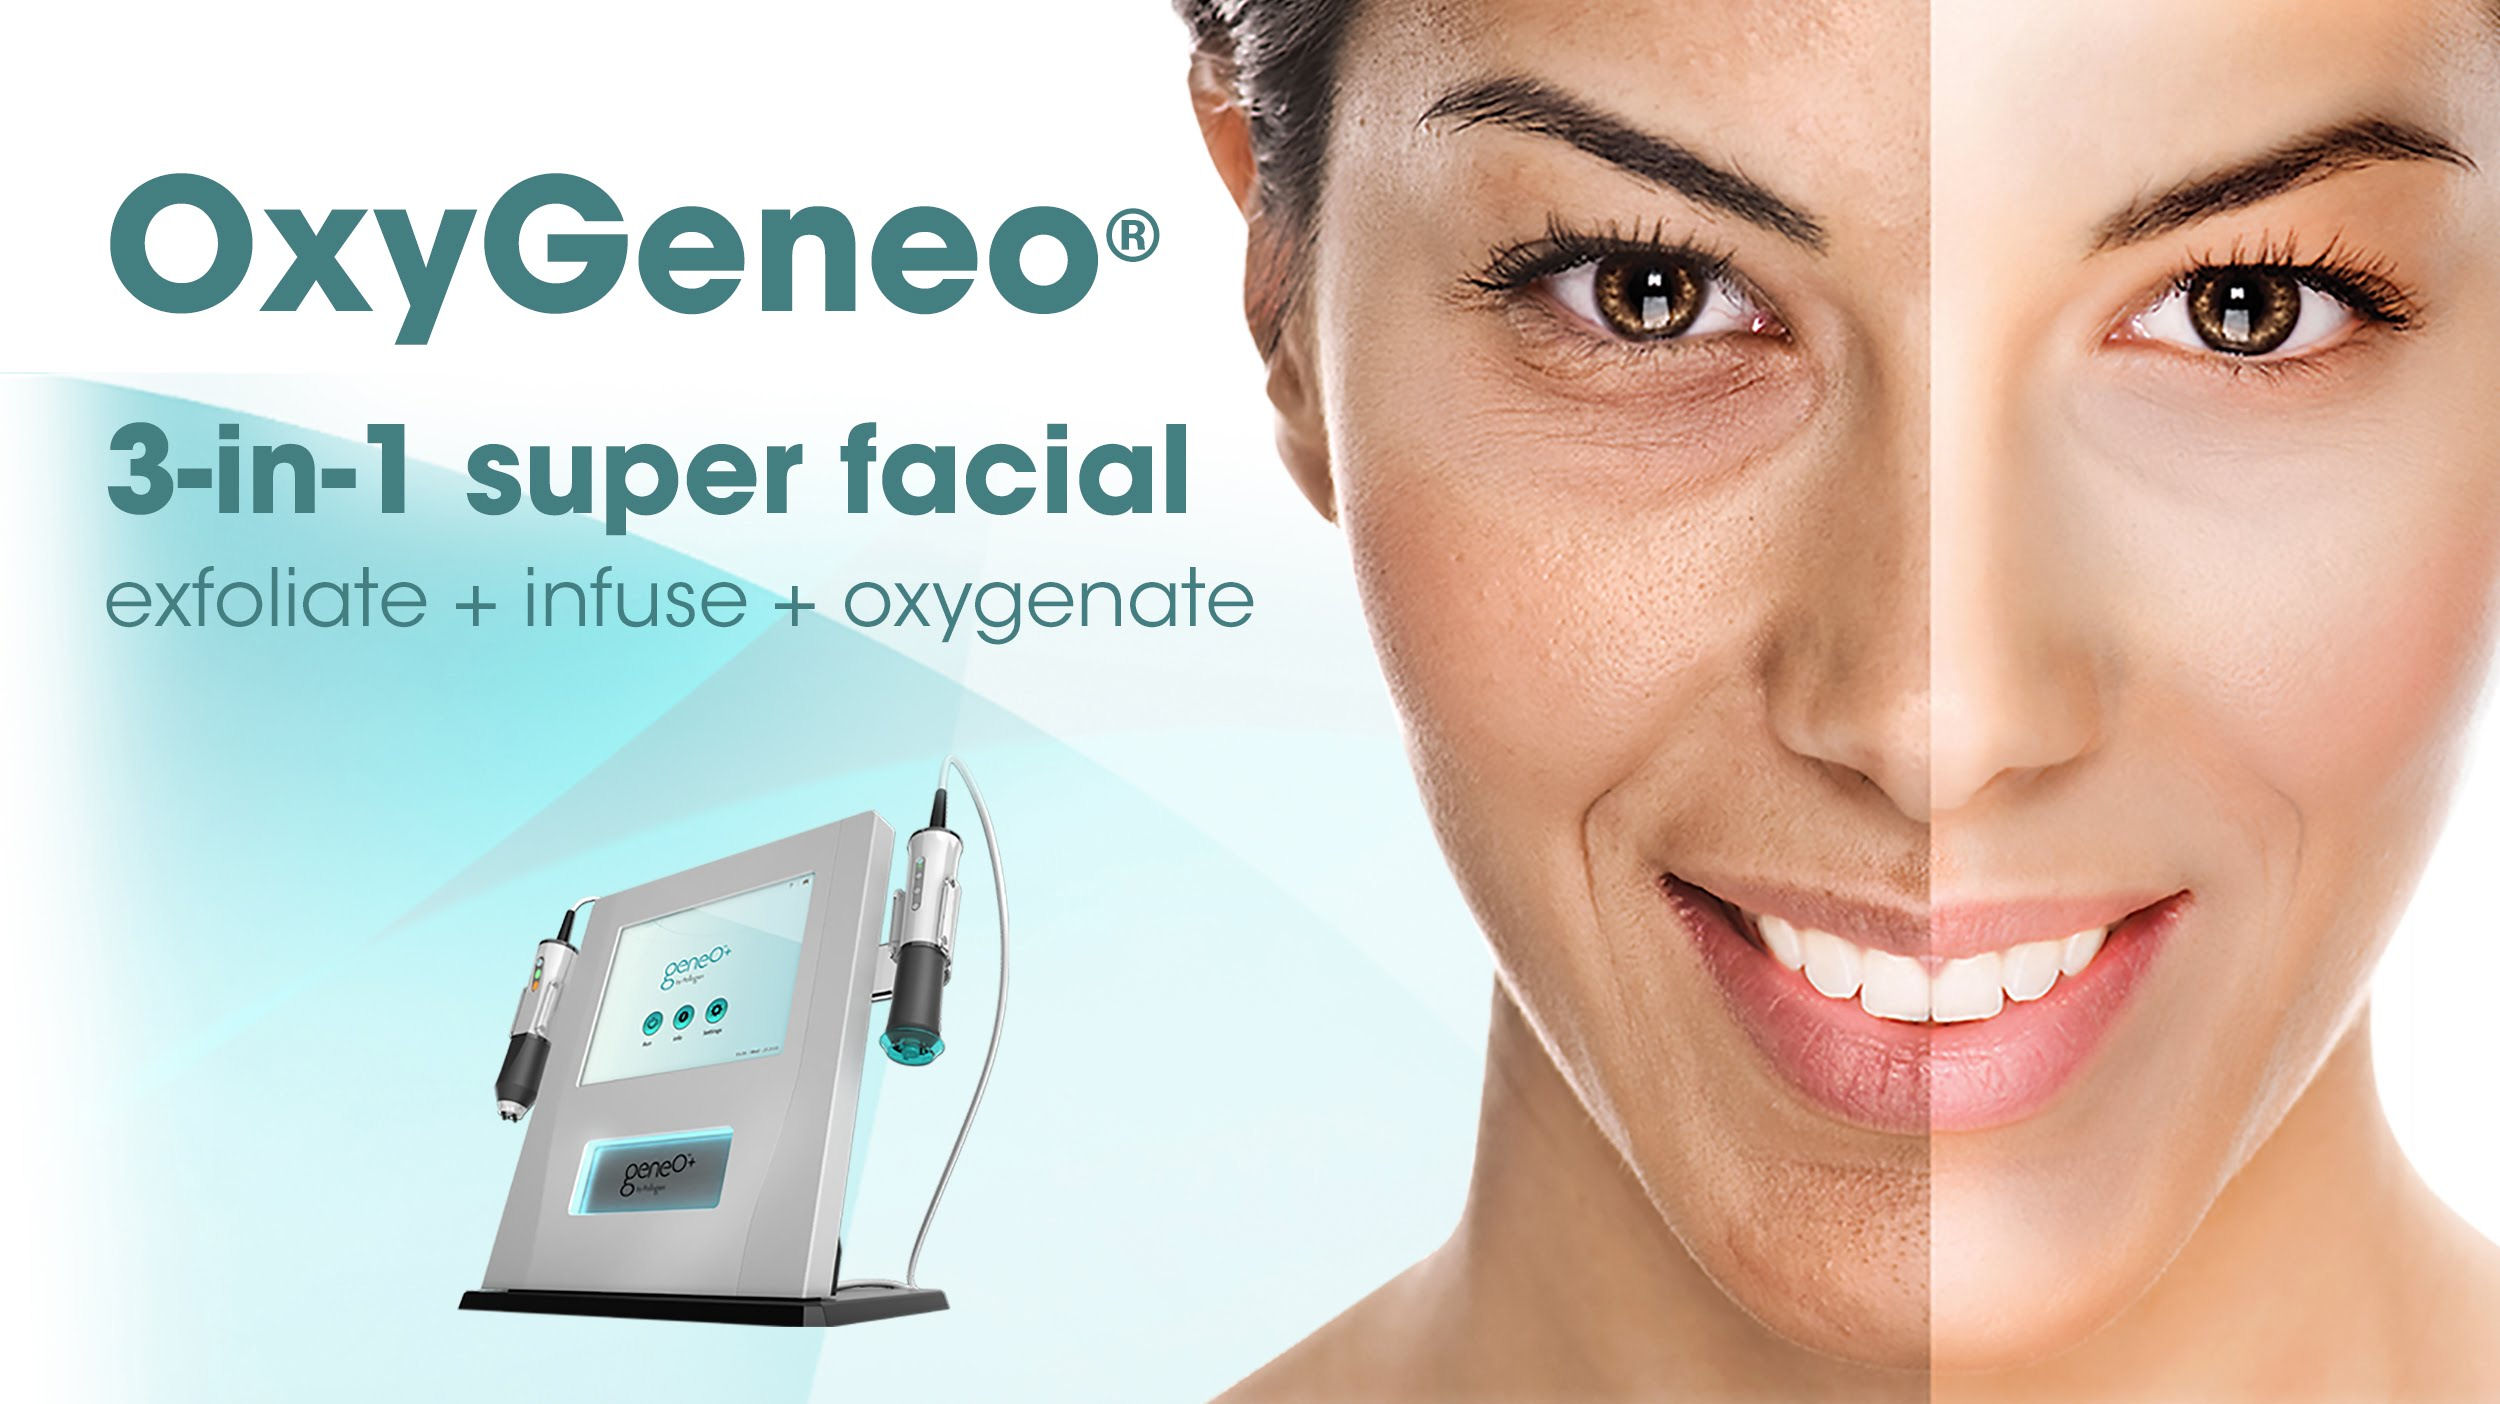 oxygeneo 3in1